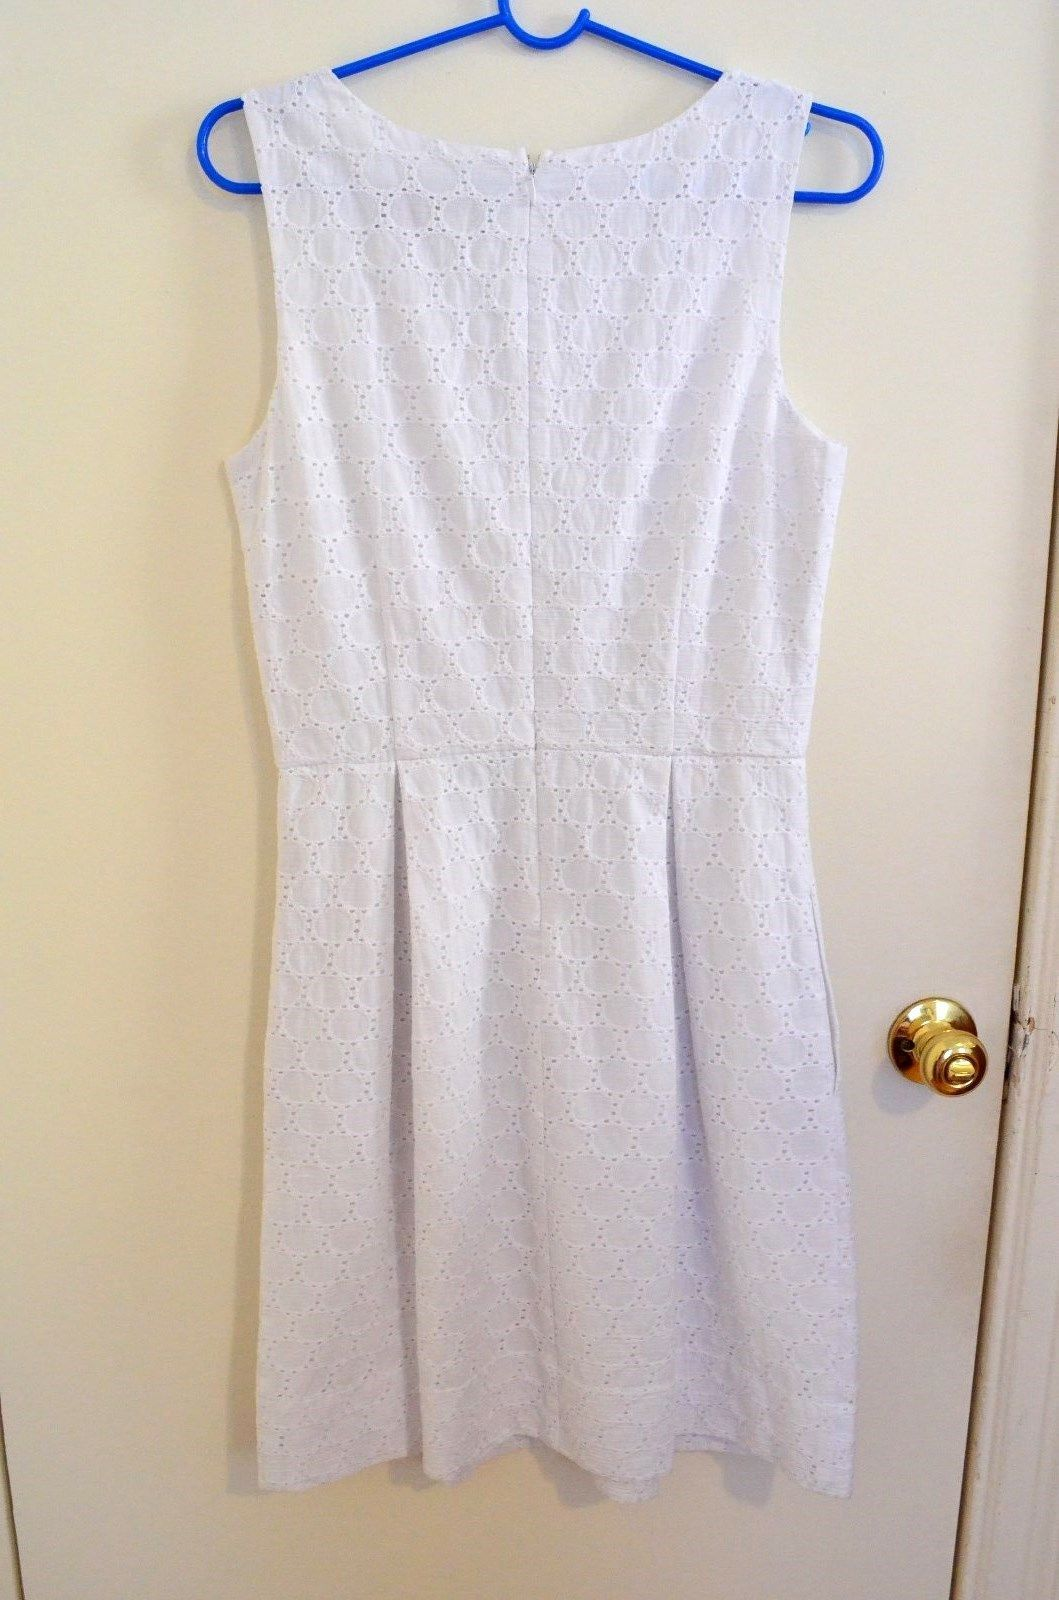 Miss Sixty M60 $128 Eyelet Embroidered Dress White size 6 Medium M NEW 》